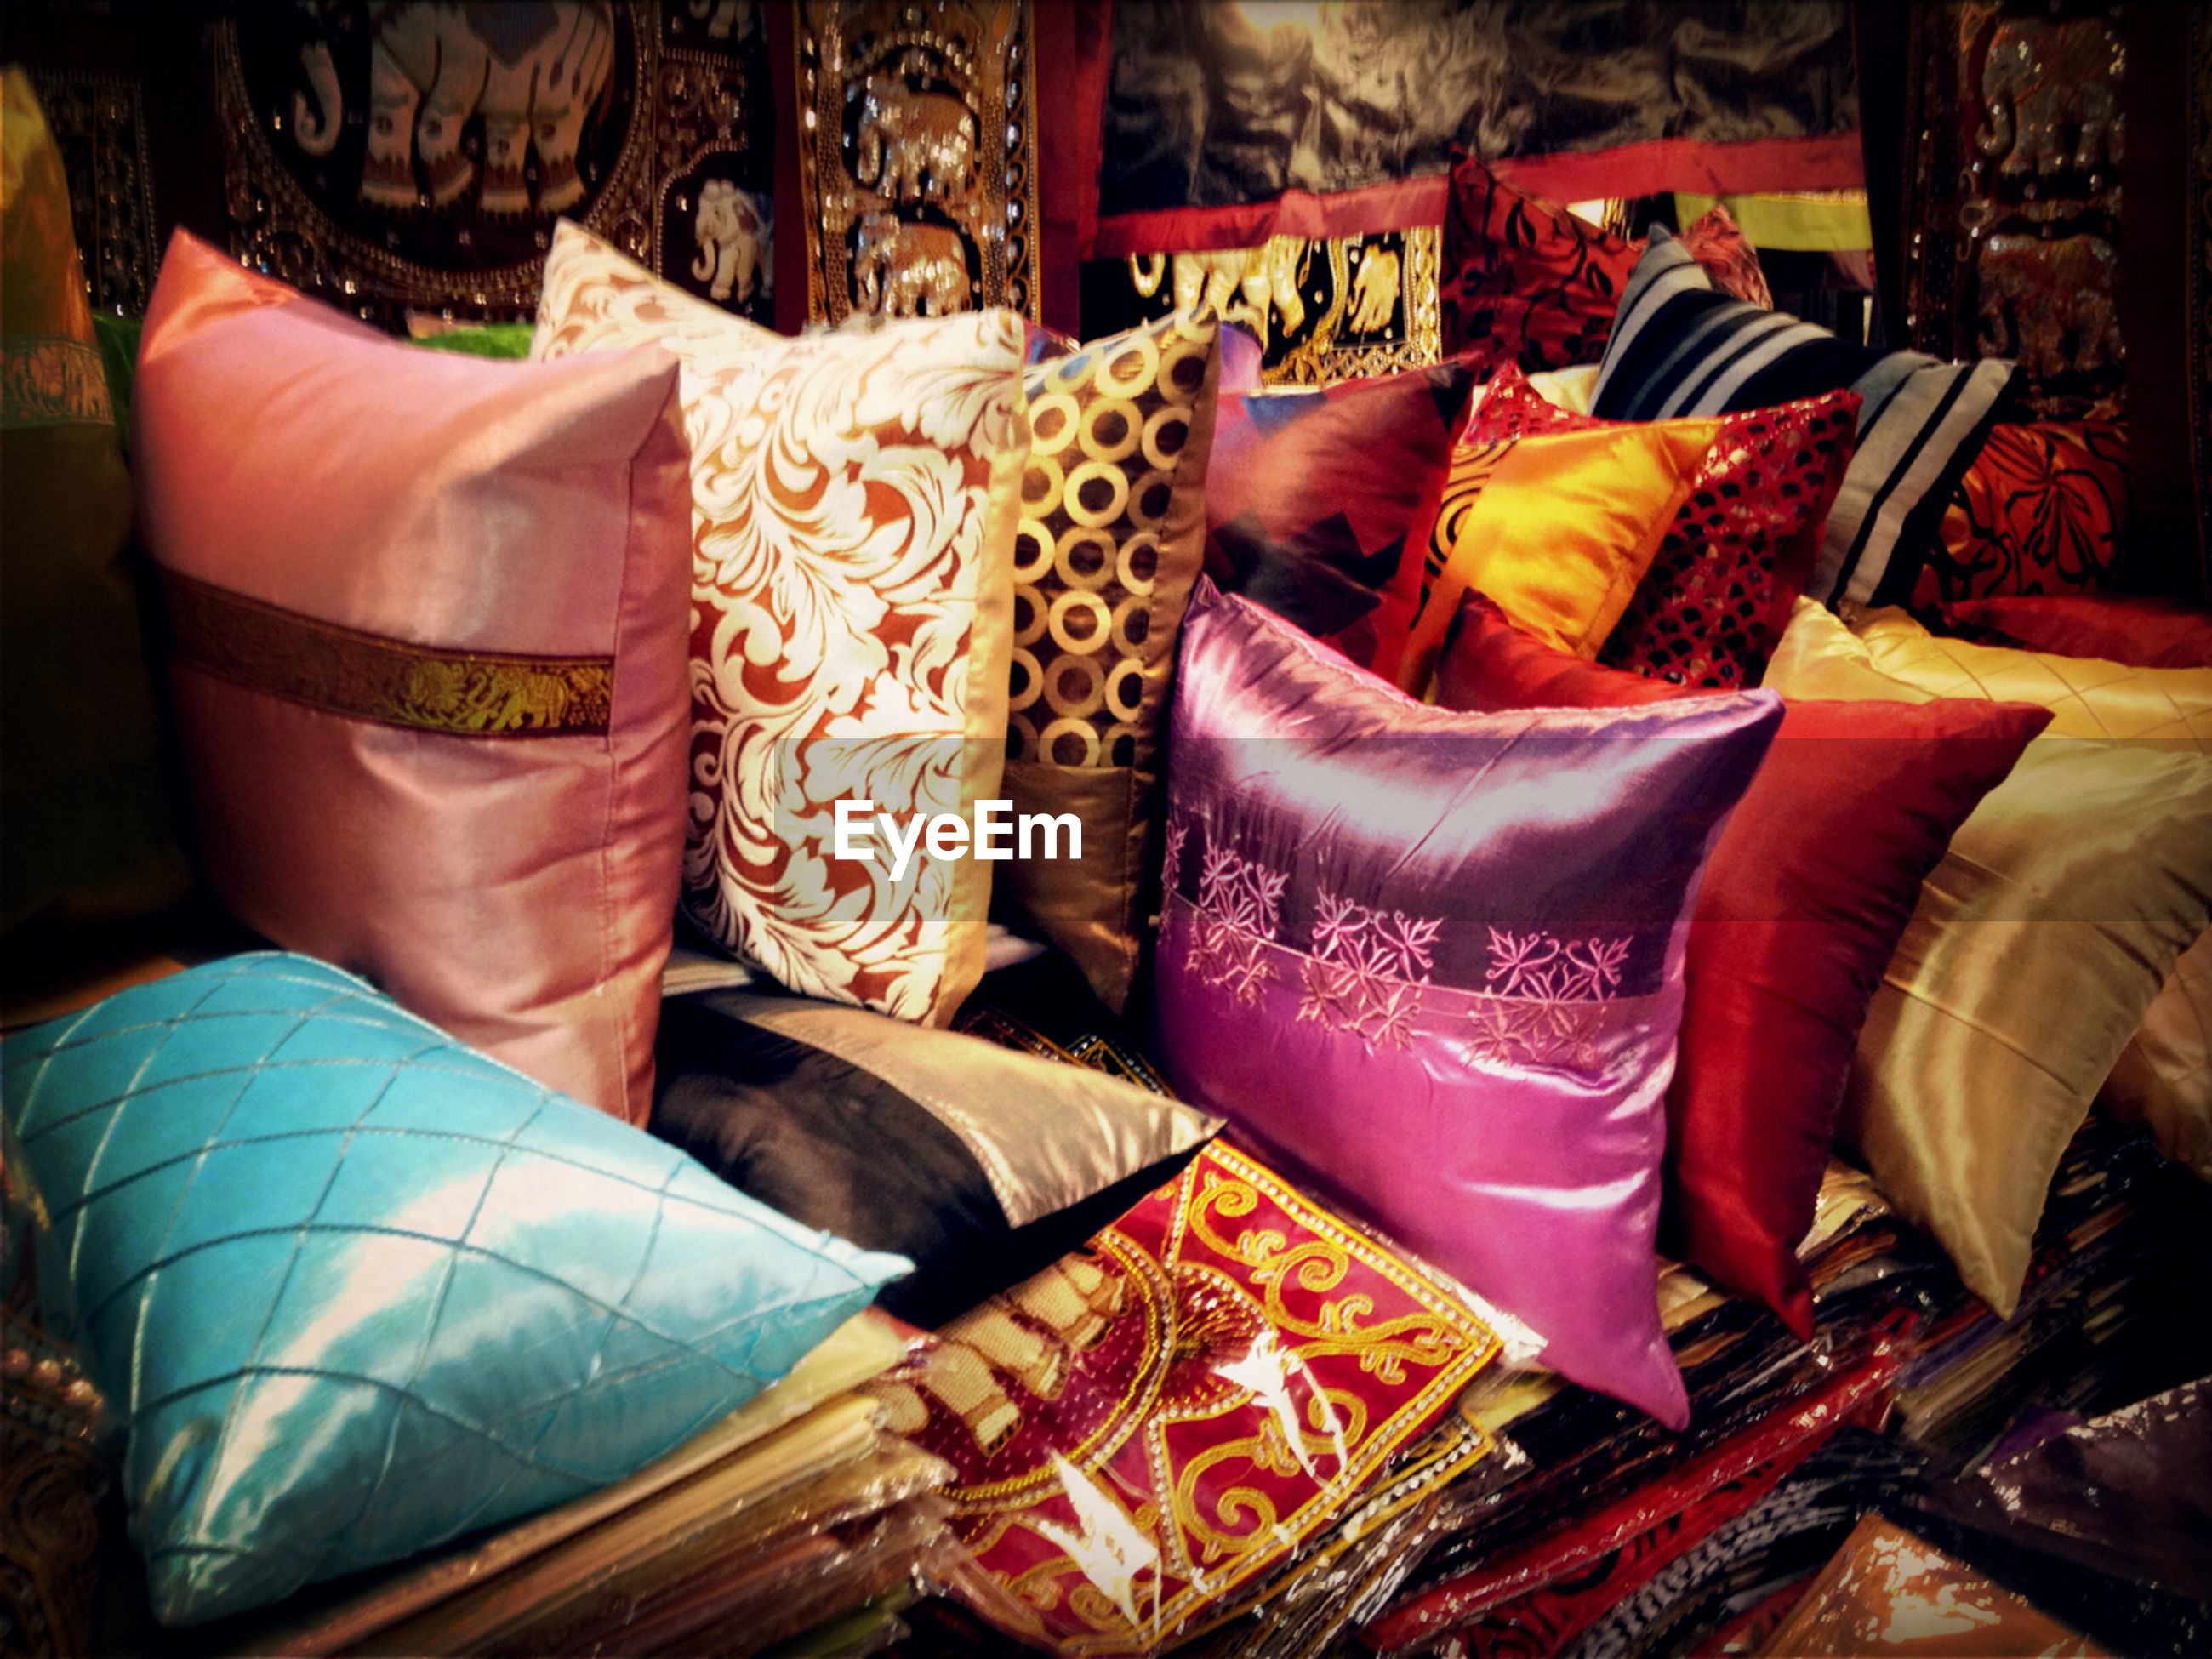 Various pillows for sale in shop